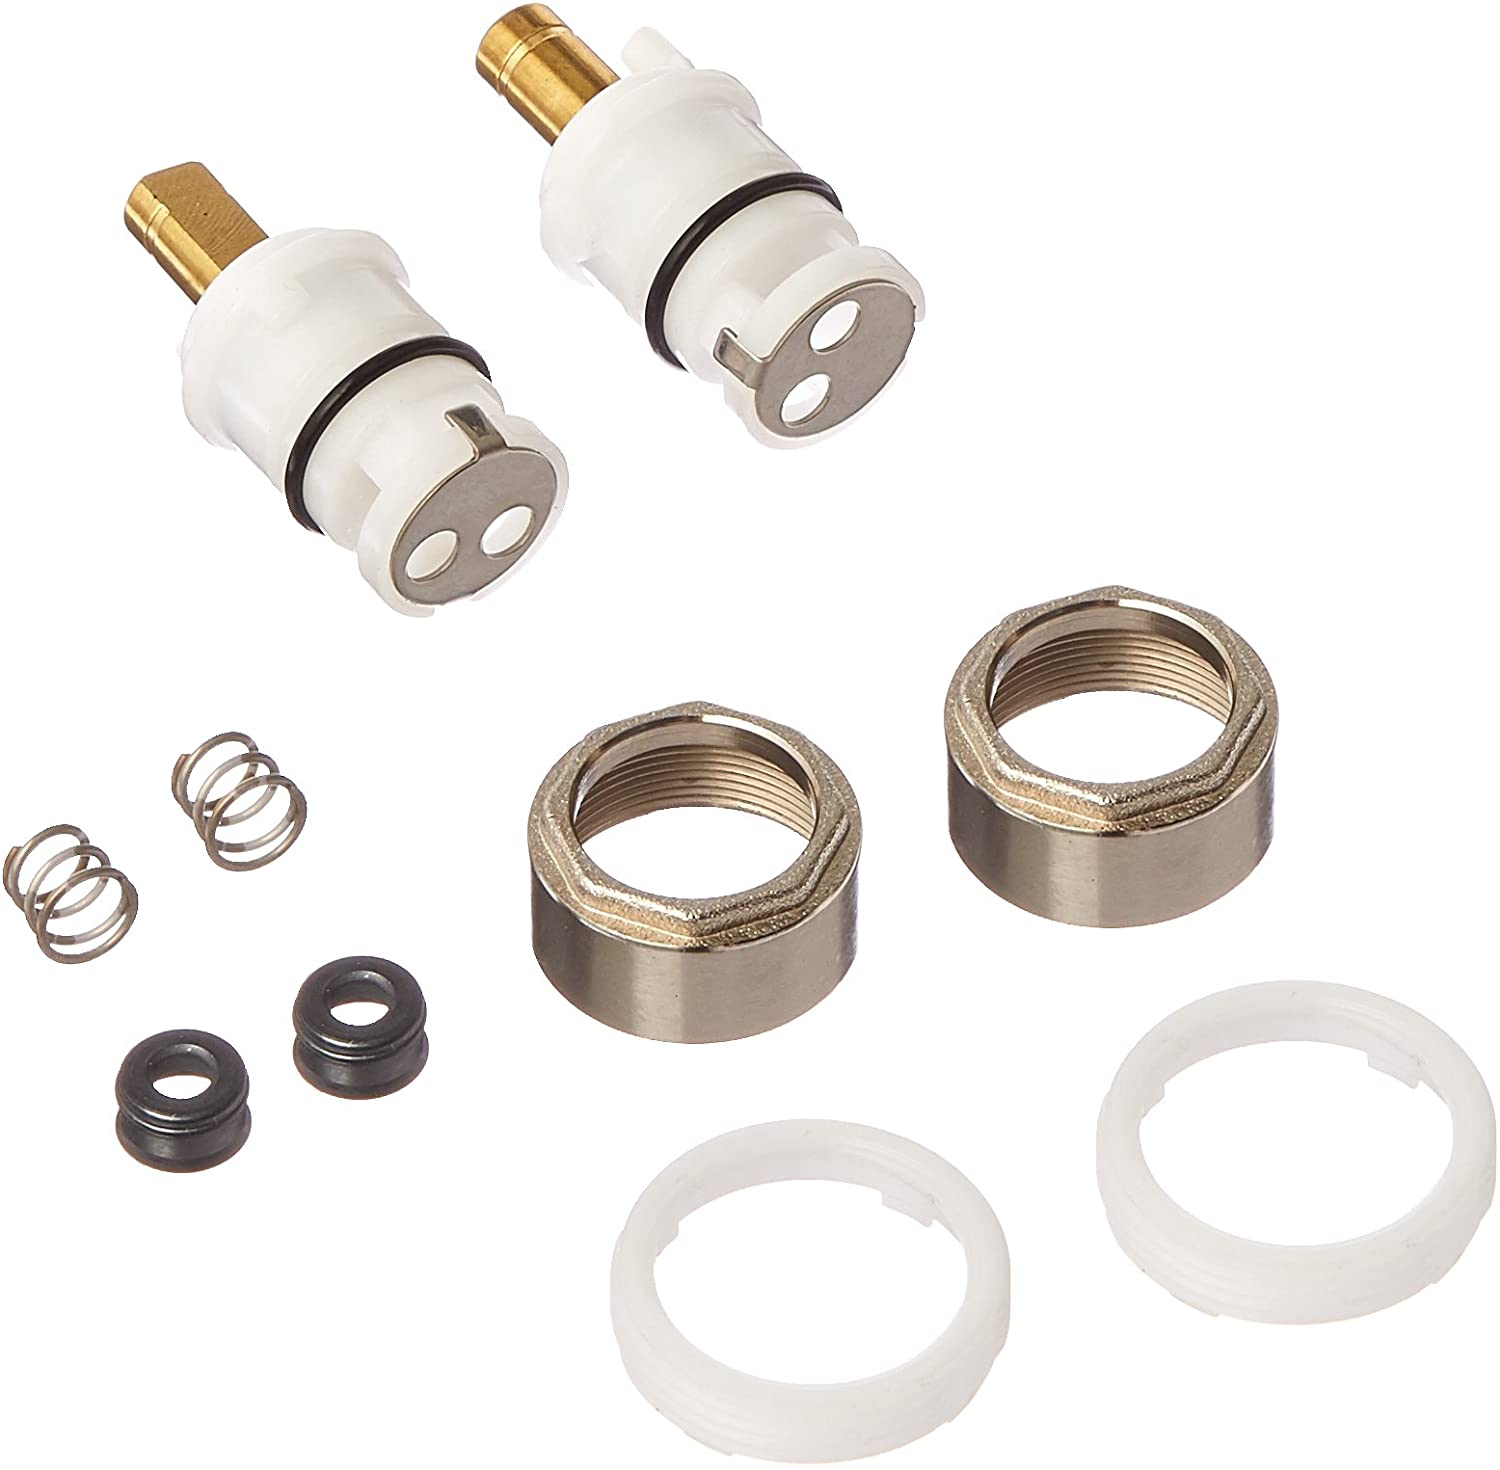 Delta FAUCETS RP74418 Stem Unit Seat and Spring, Bonnet Nut and Washer